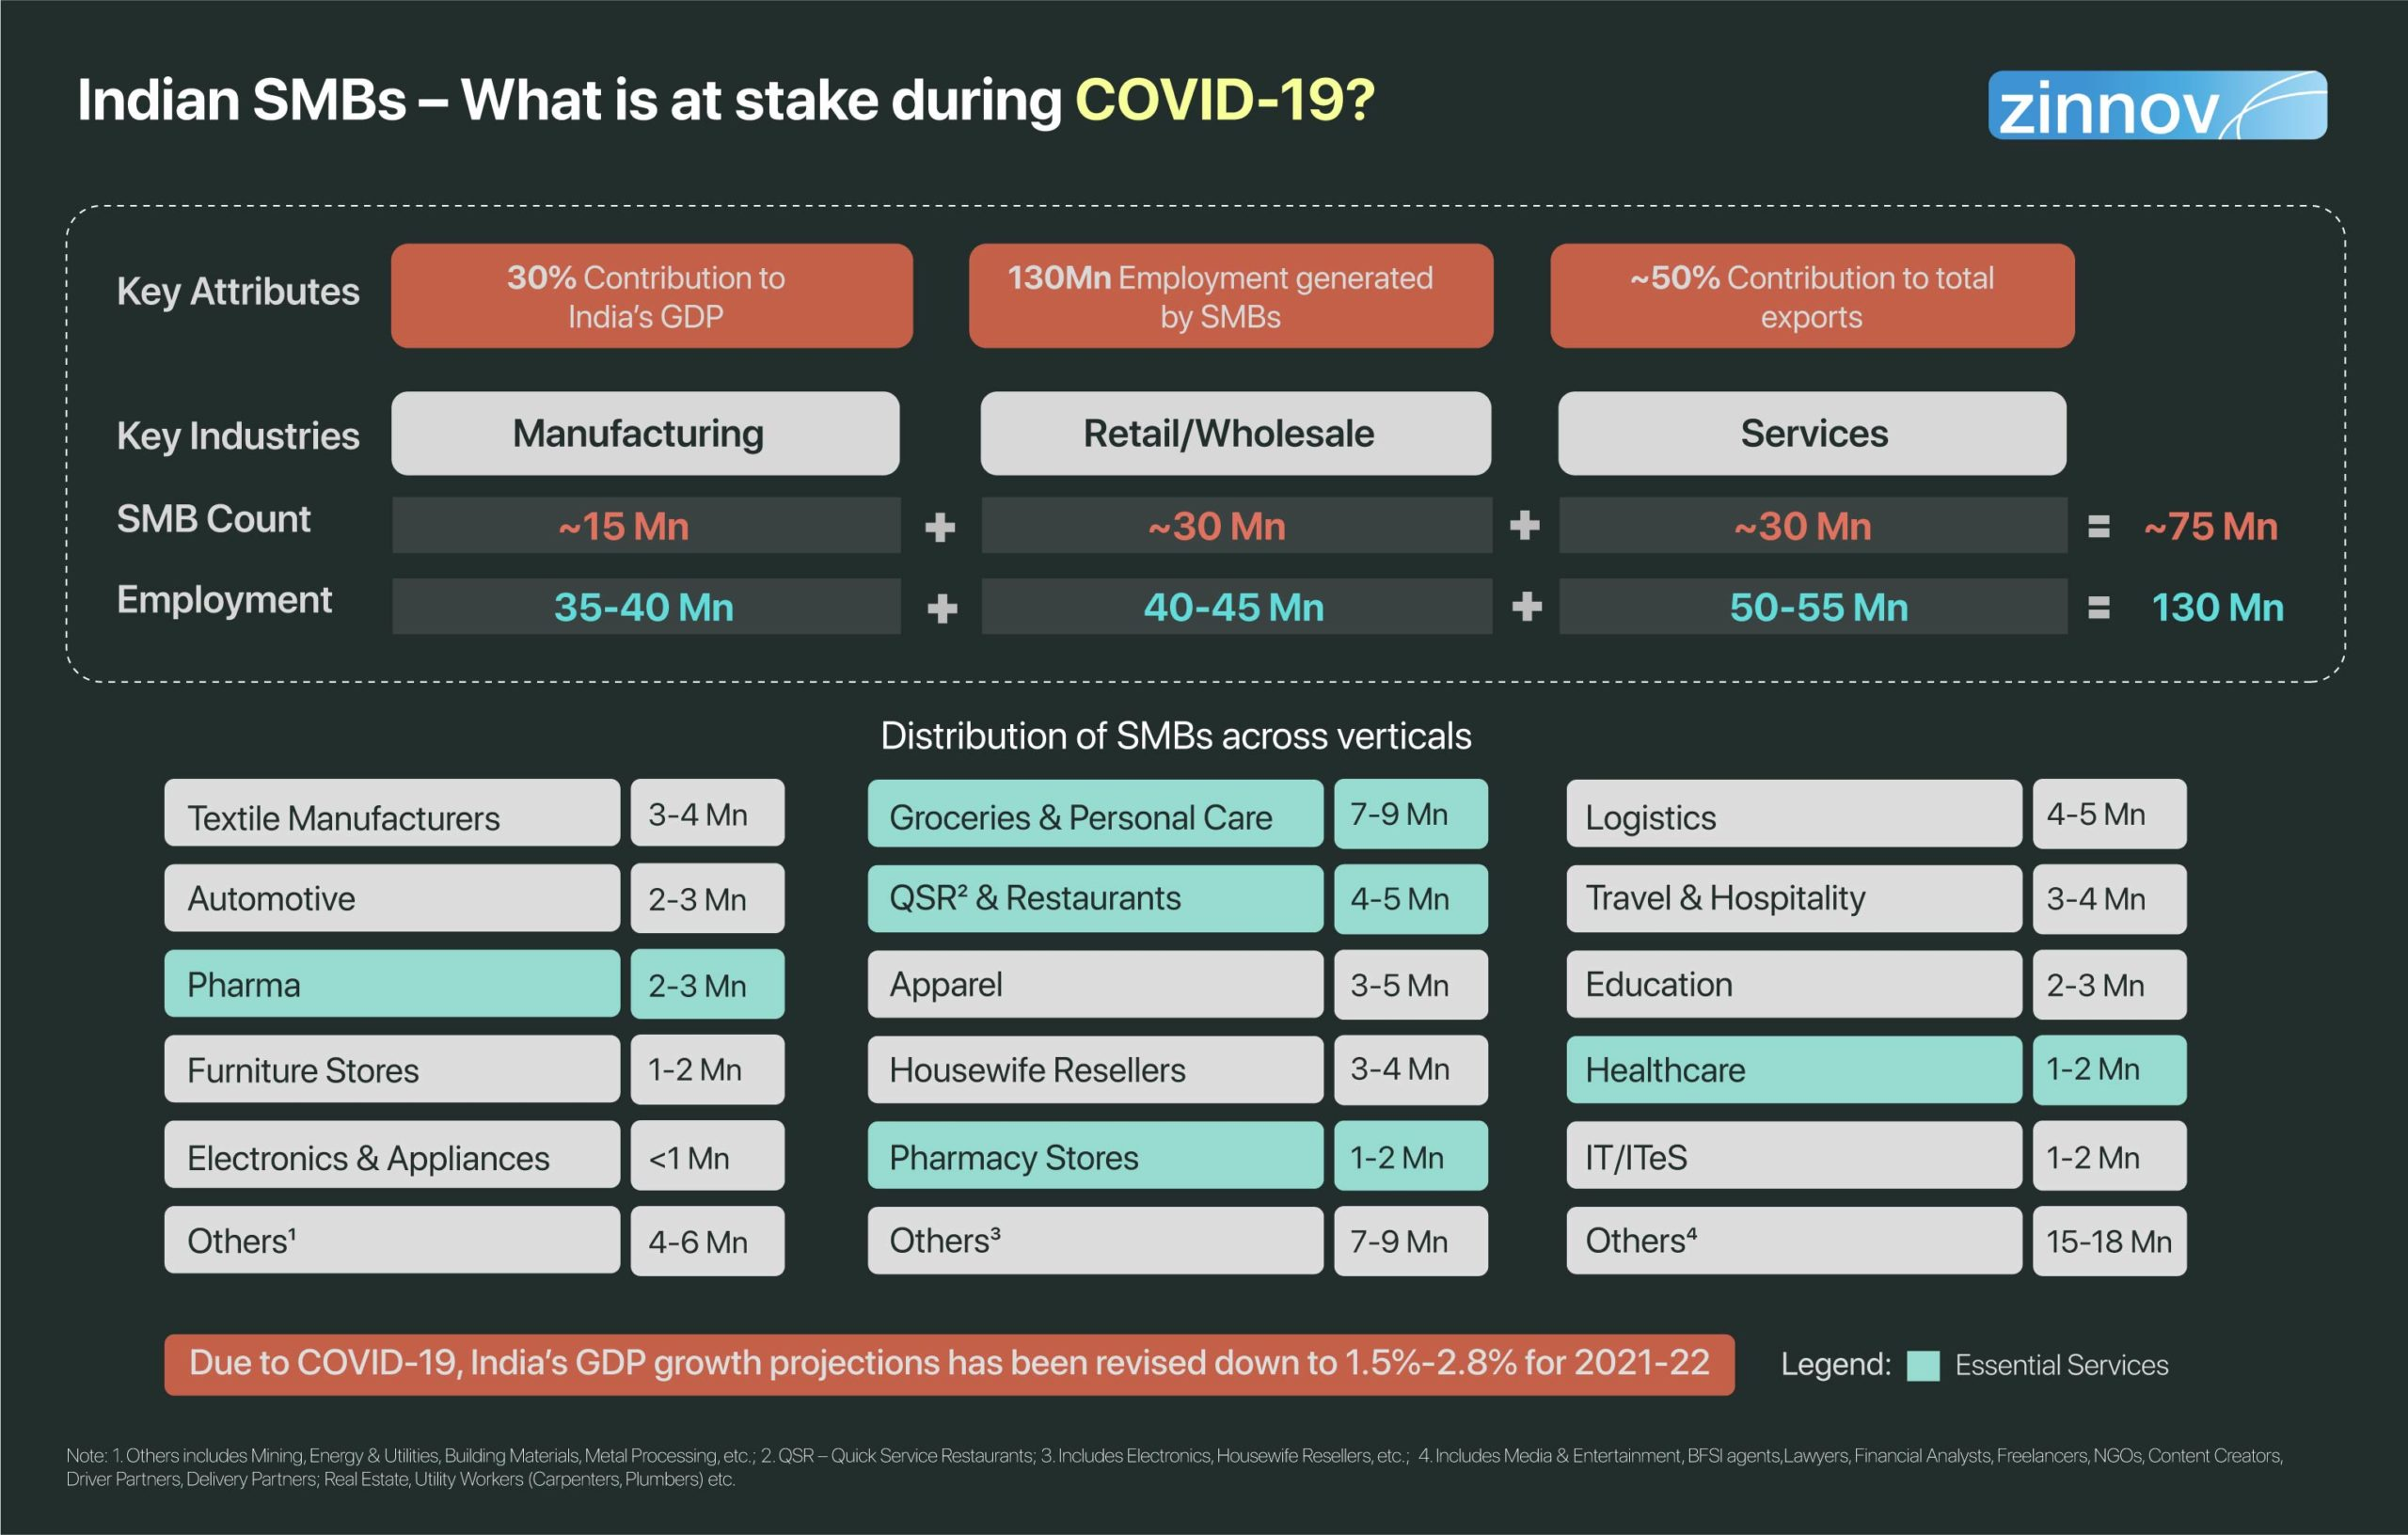 Indian SMBs - What is at stake during COVID-19?